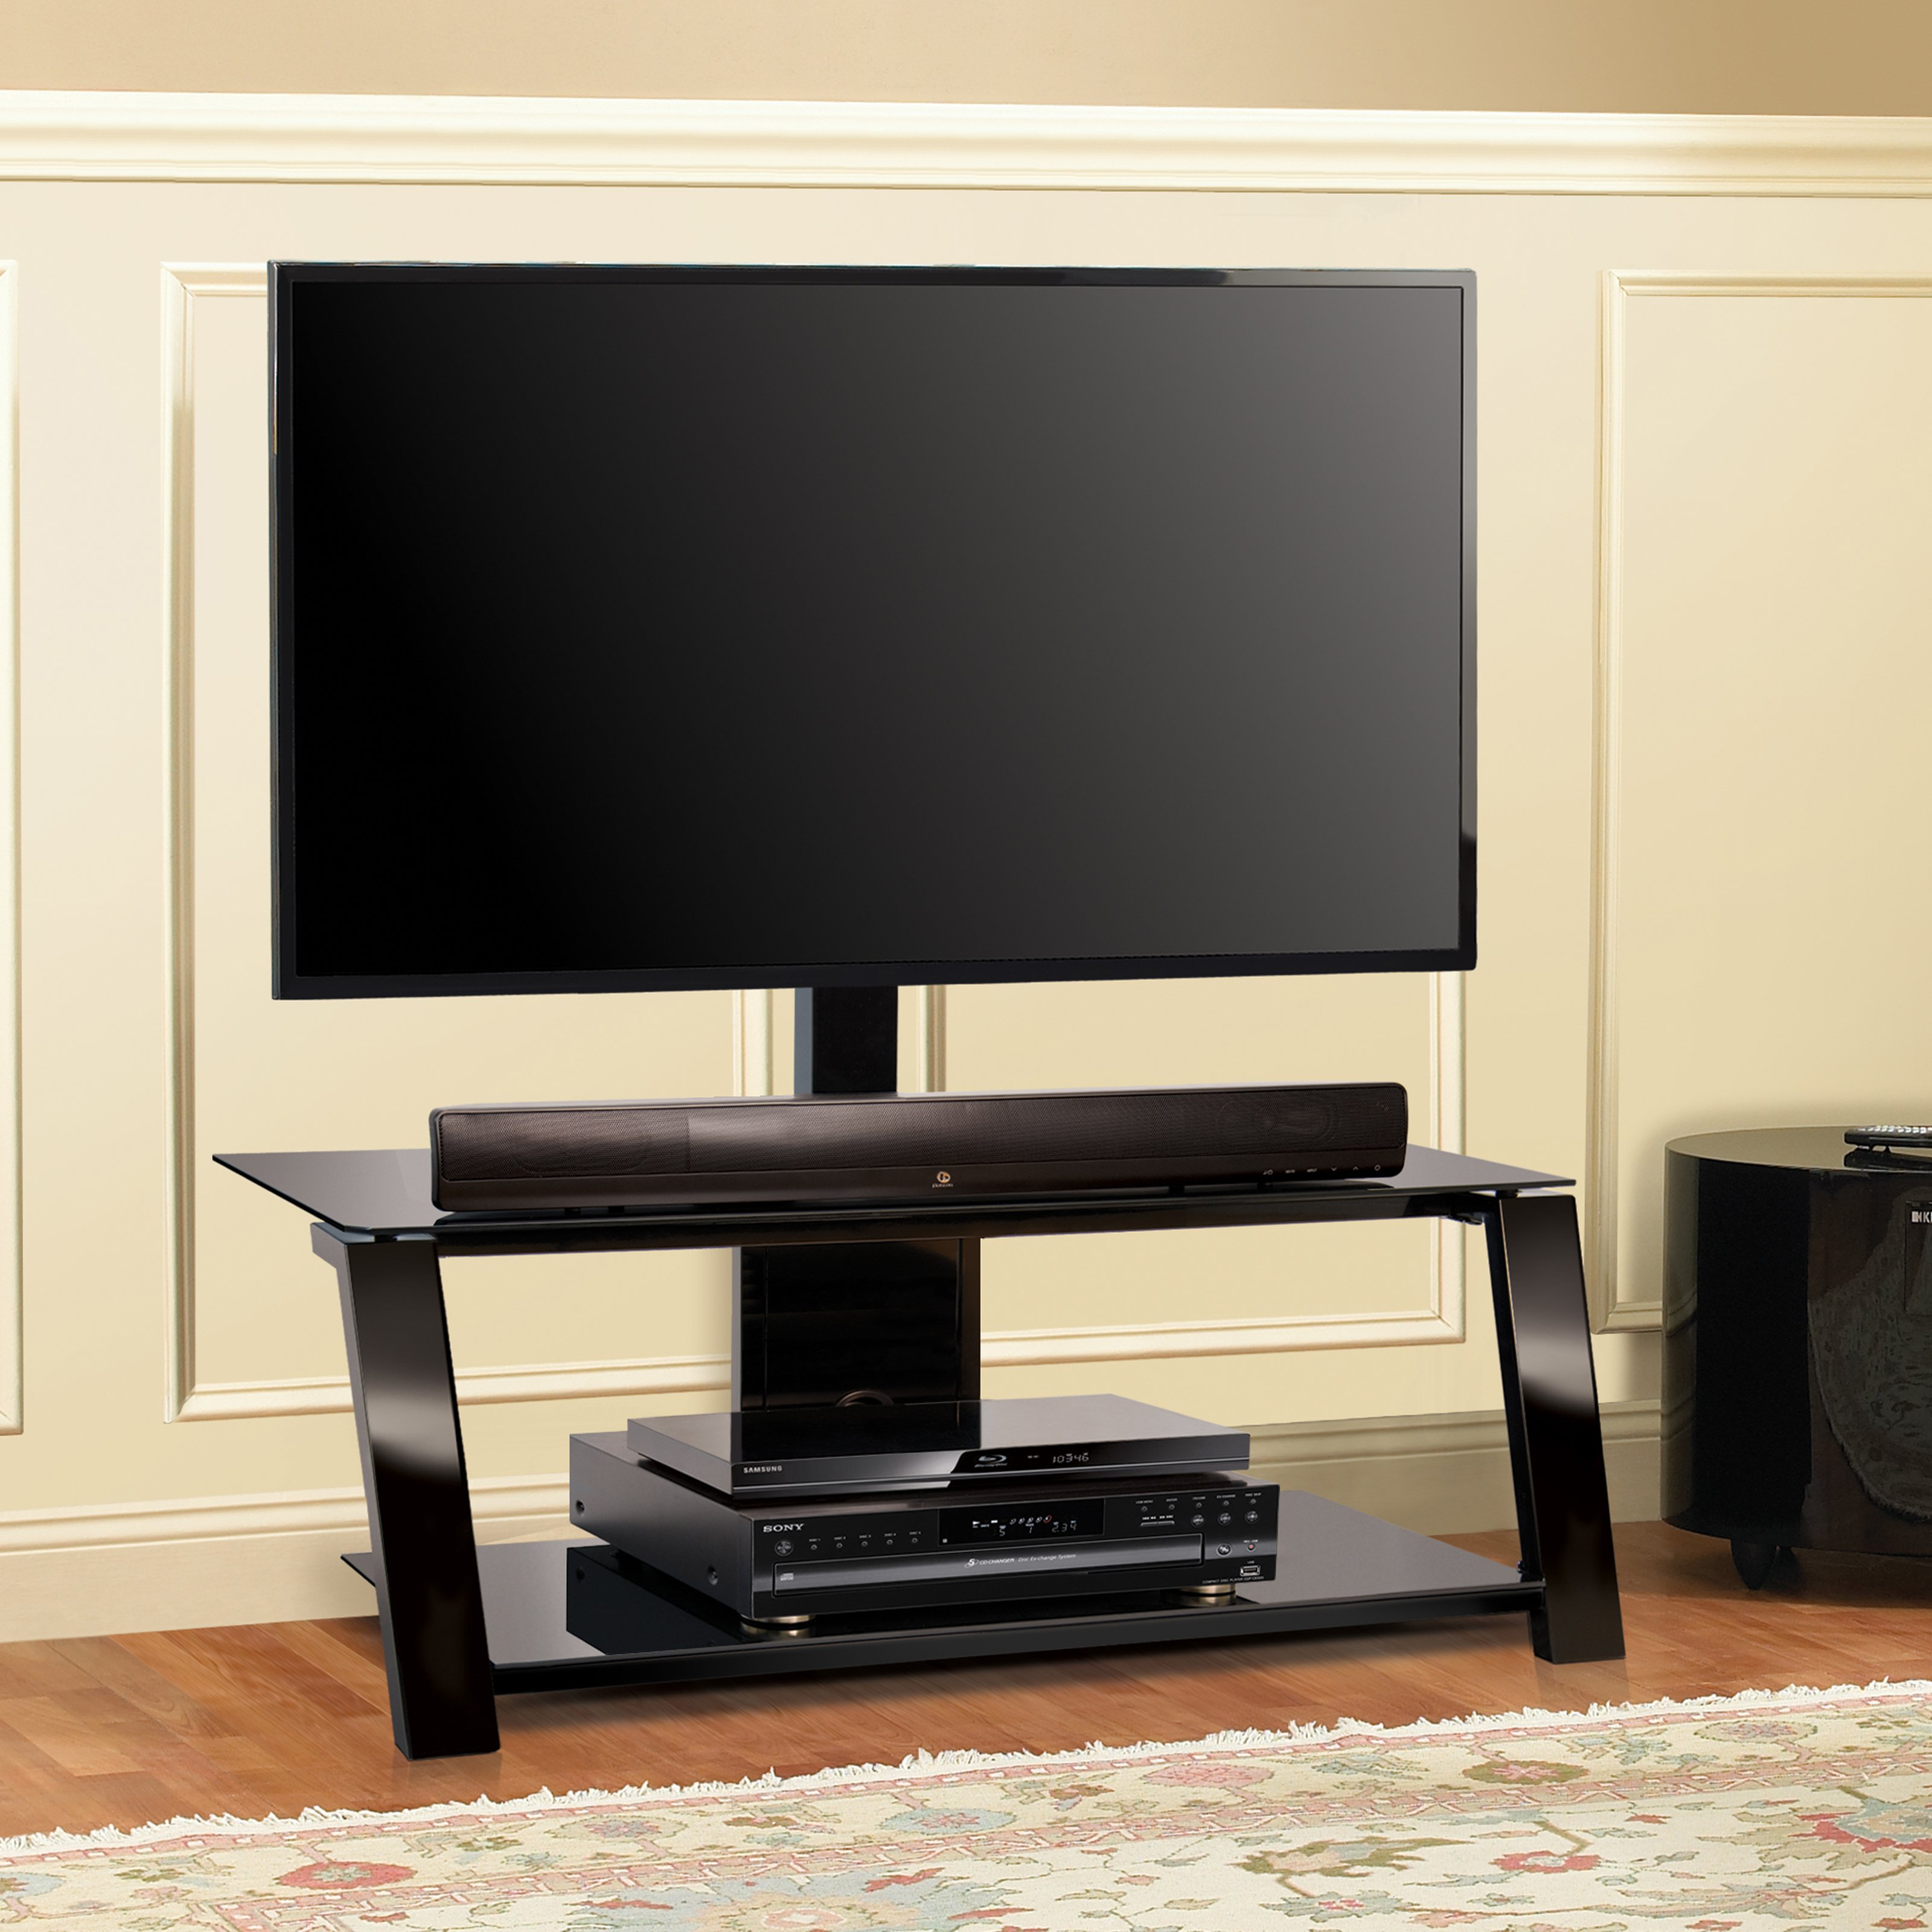 BellO Triple Play 44 in. Universal Flat Panel TV Stand Black by Bello